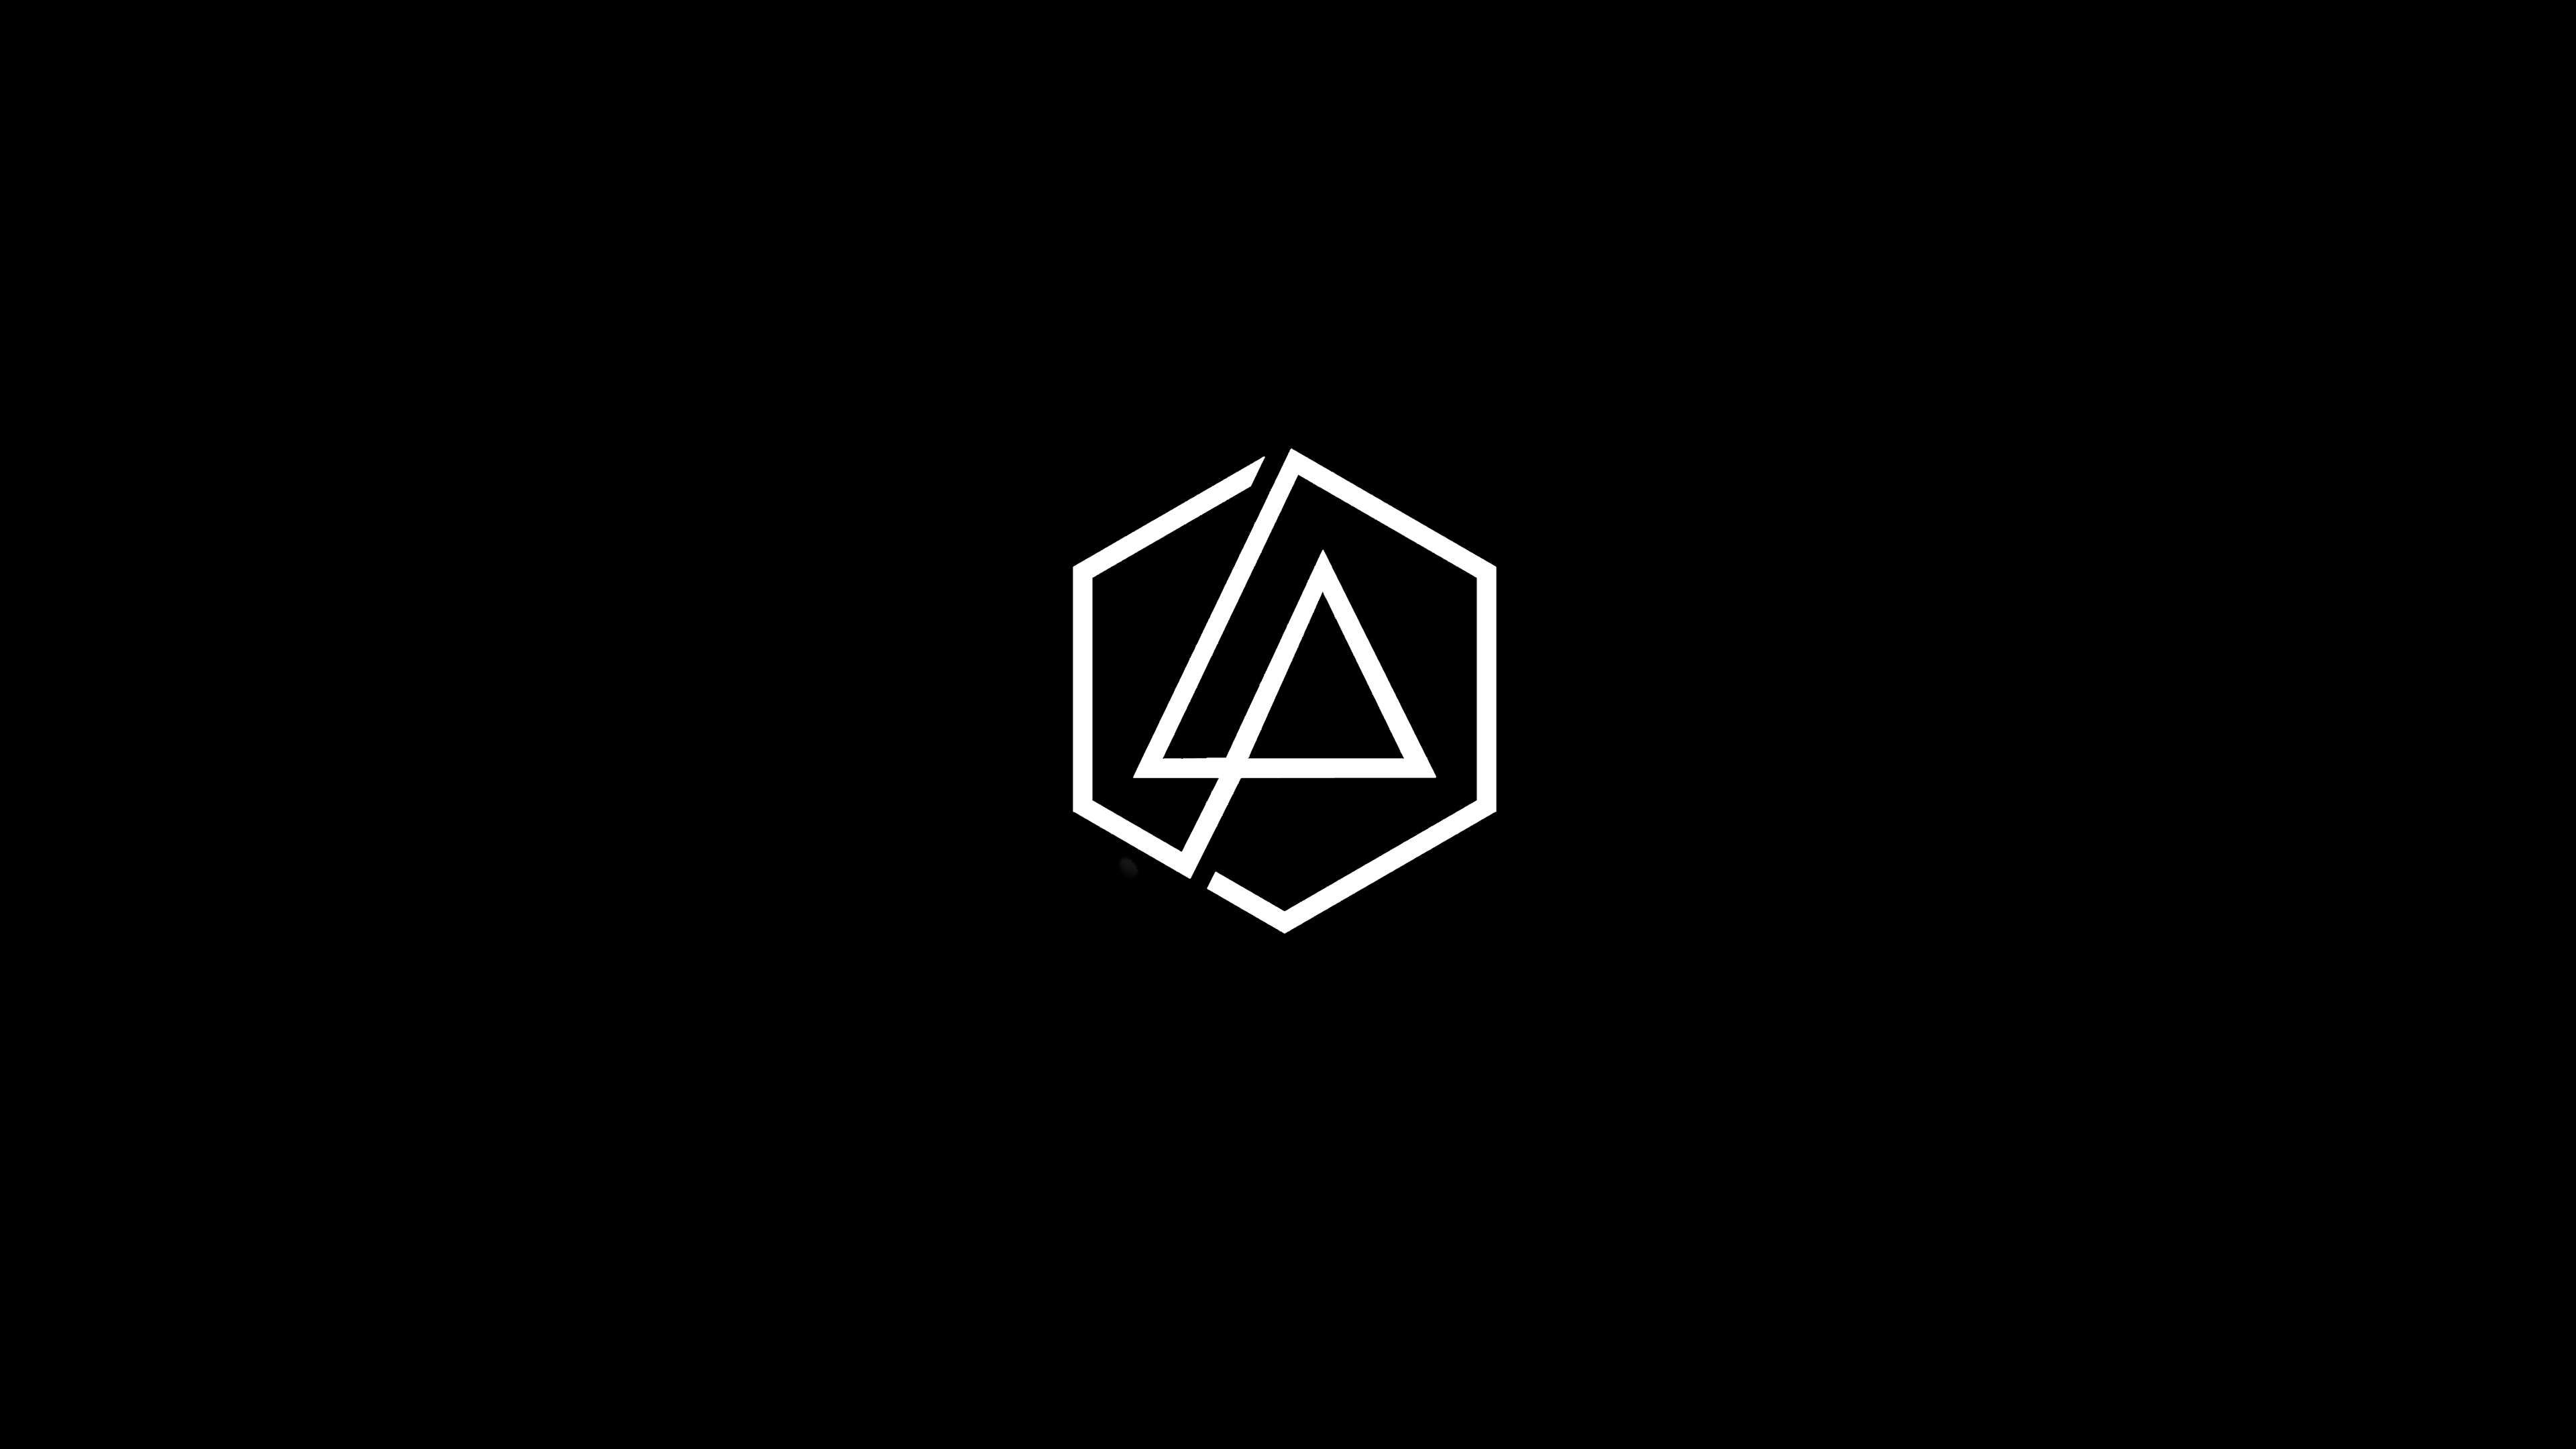 4k Amoled Black Linkinpark Simple 4k In 2020 Linkin